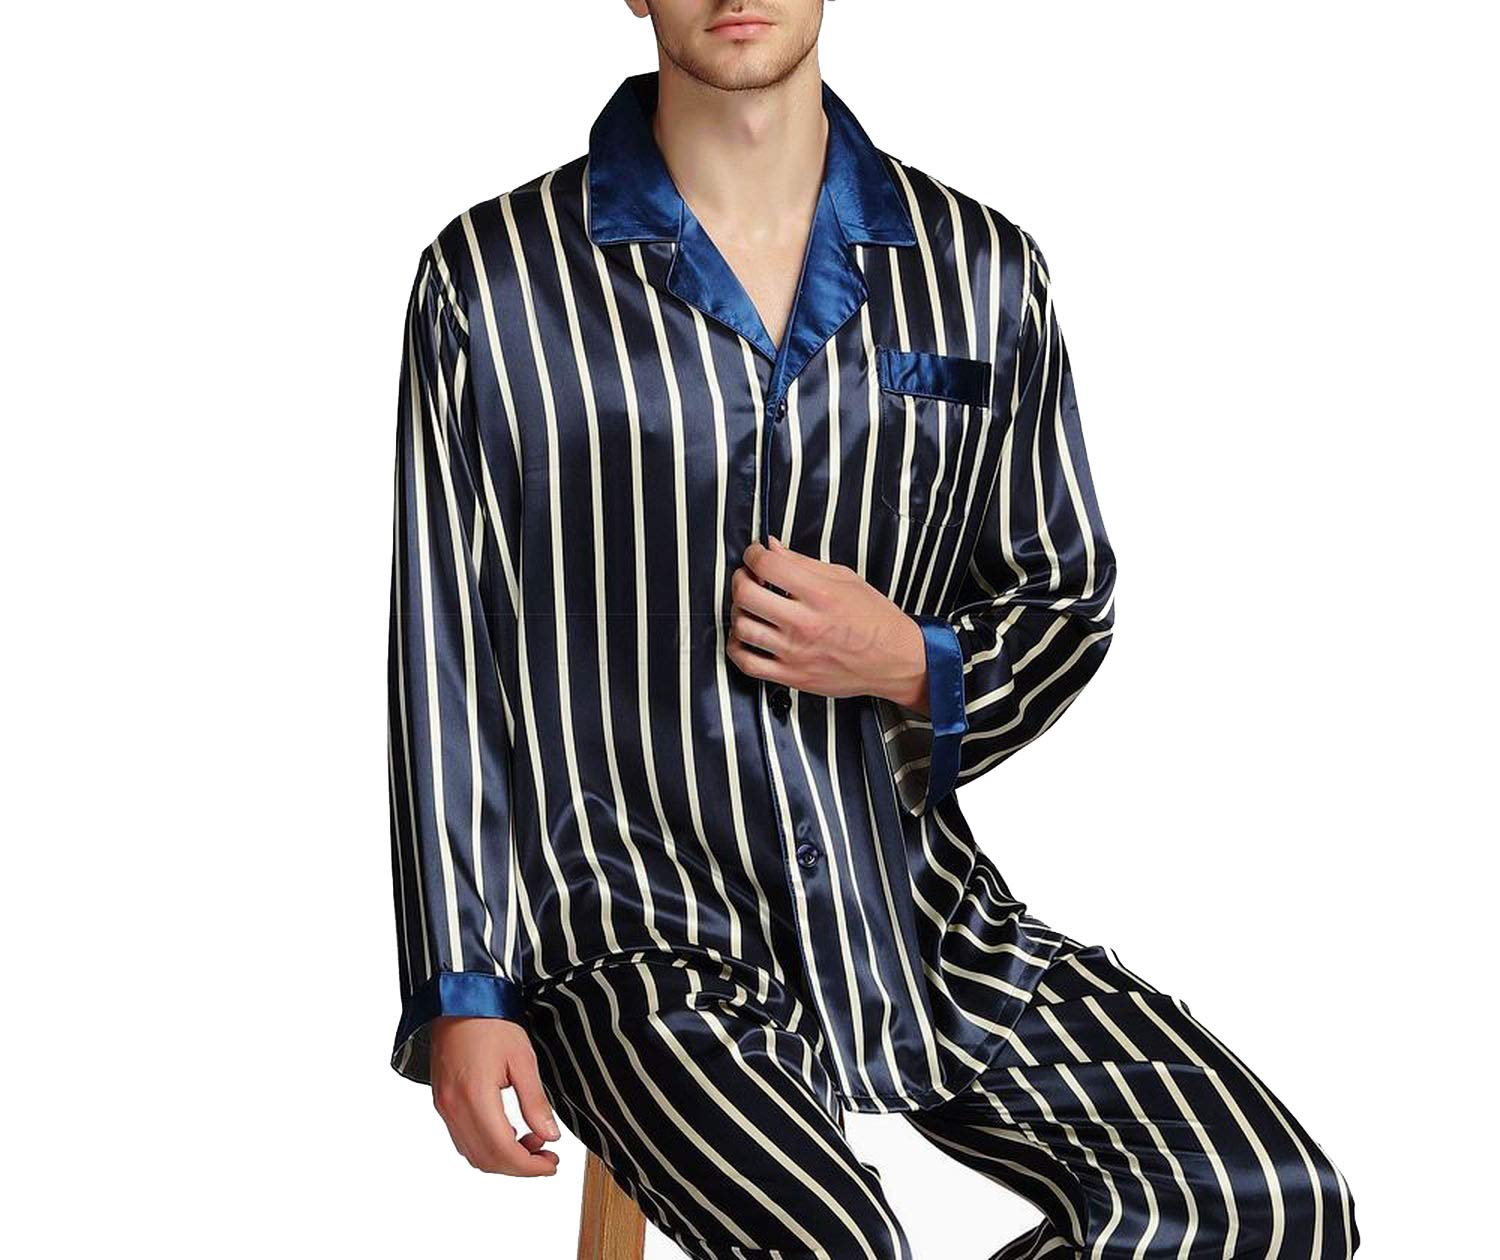 Mens Silk Satin Pajamas Set Pyjamas Set Sleepwear Loungewear,Navy Strip,S